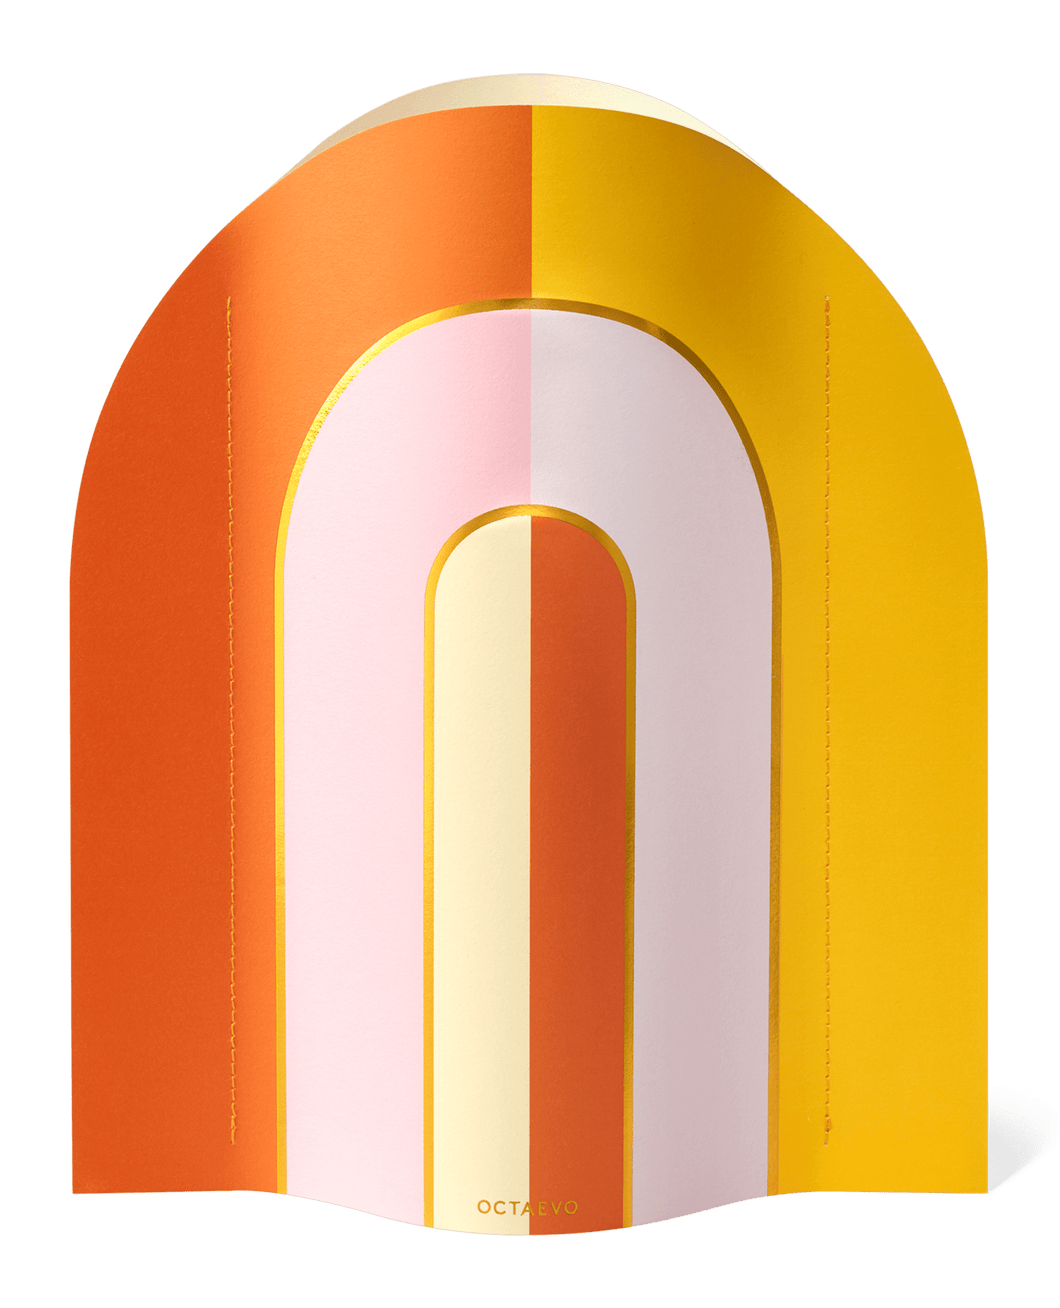 Octaevo Paper Vase Riviera/Orange Yellow Pink